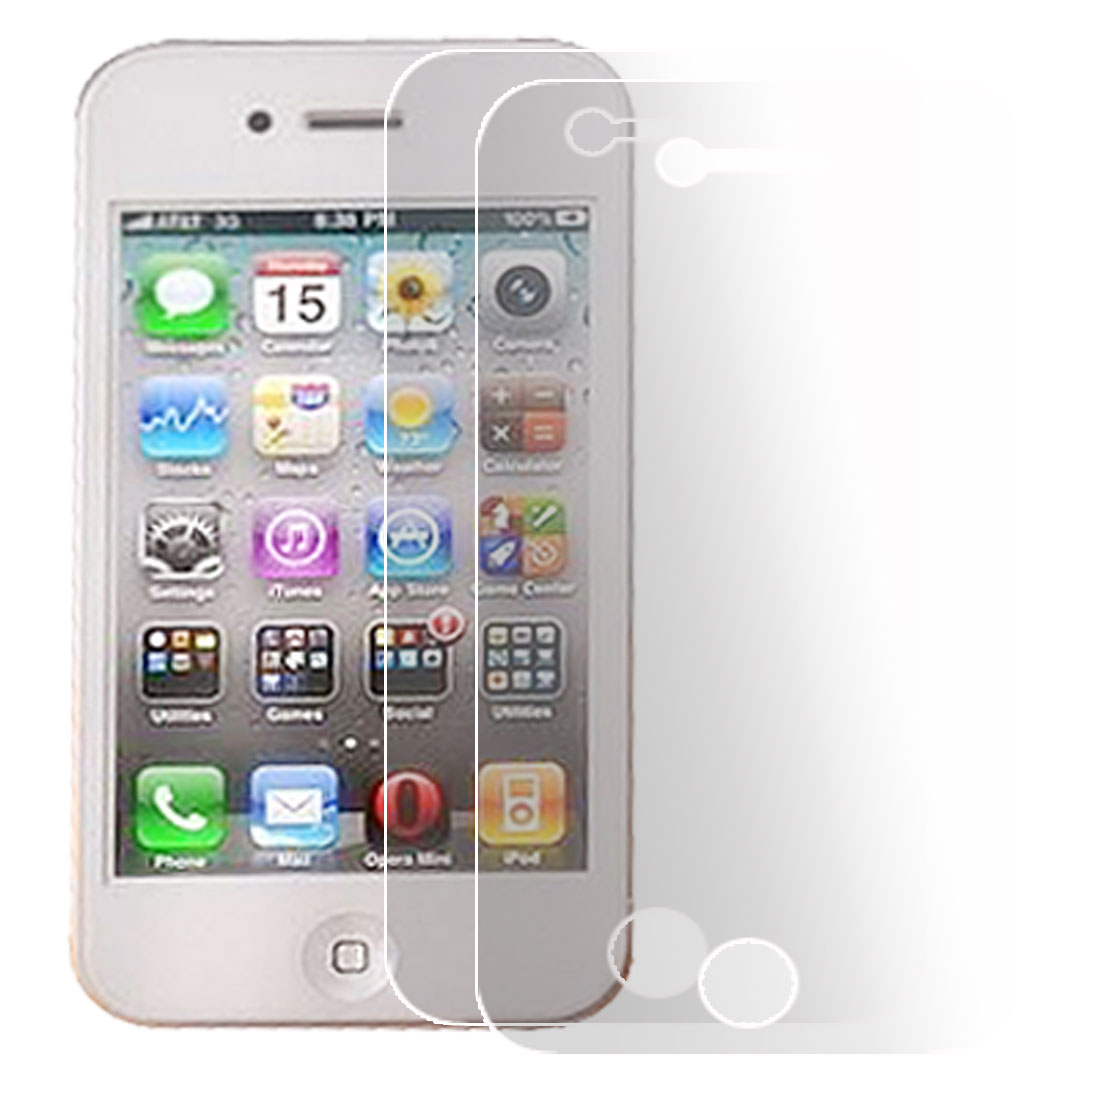 2 Pcs Clear Plastic Screen Protector Film for iPhone 4 4G